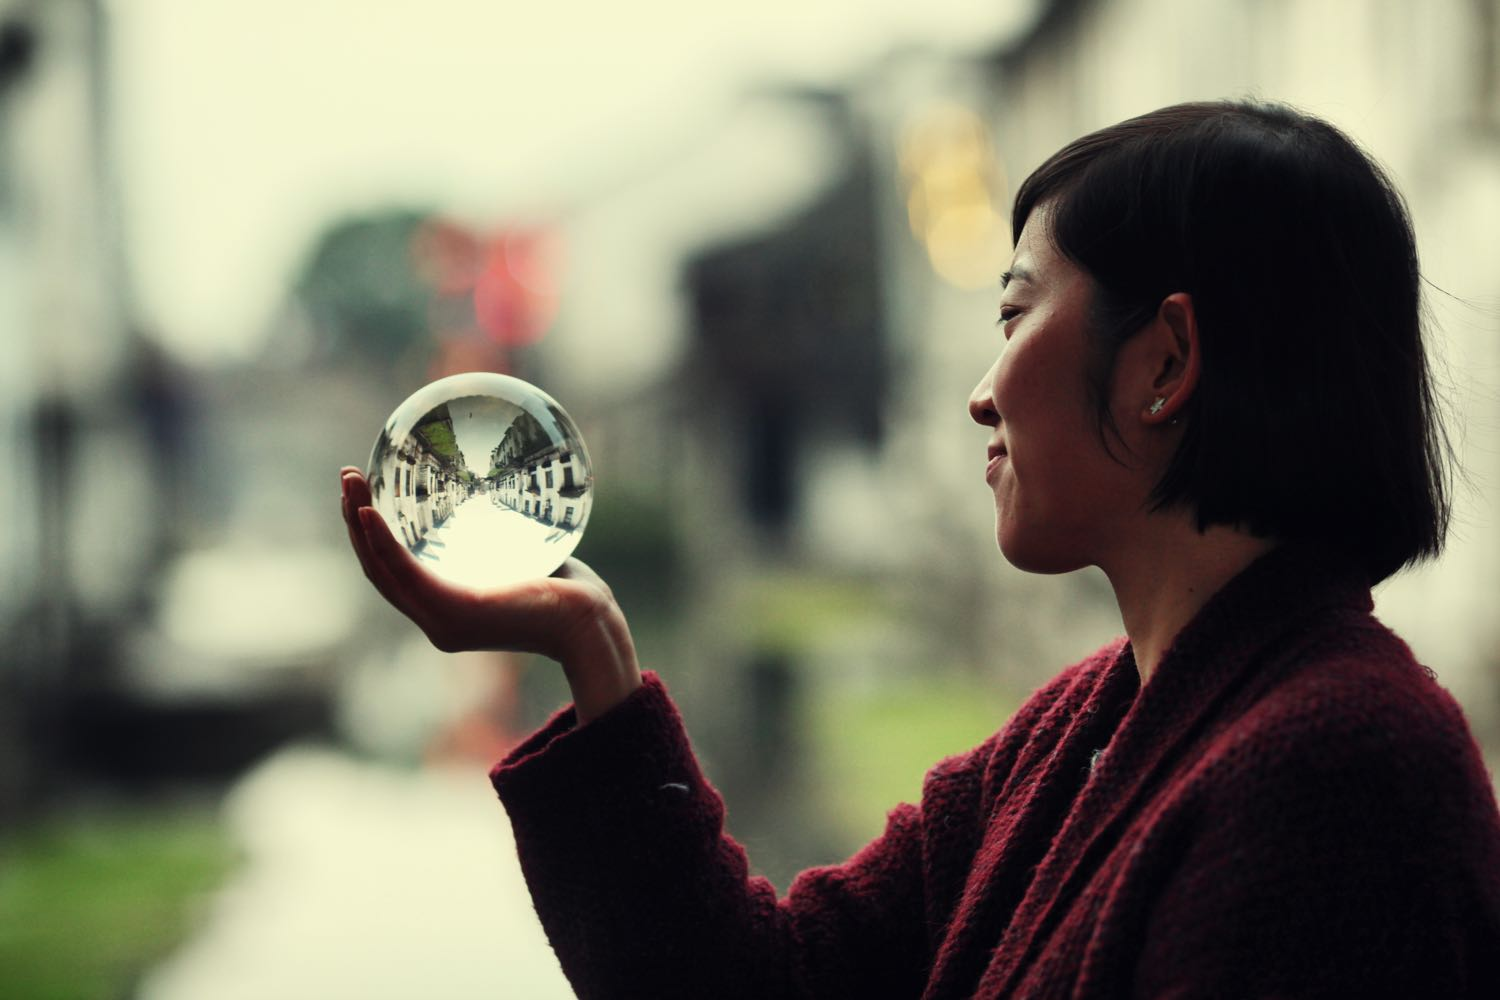 Image: In this photo, a portrait photo has been taken, but within the ball is a landscape image.